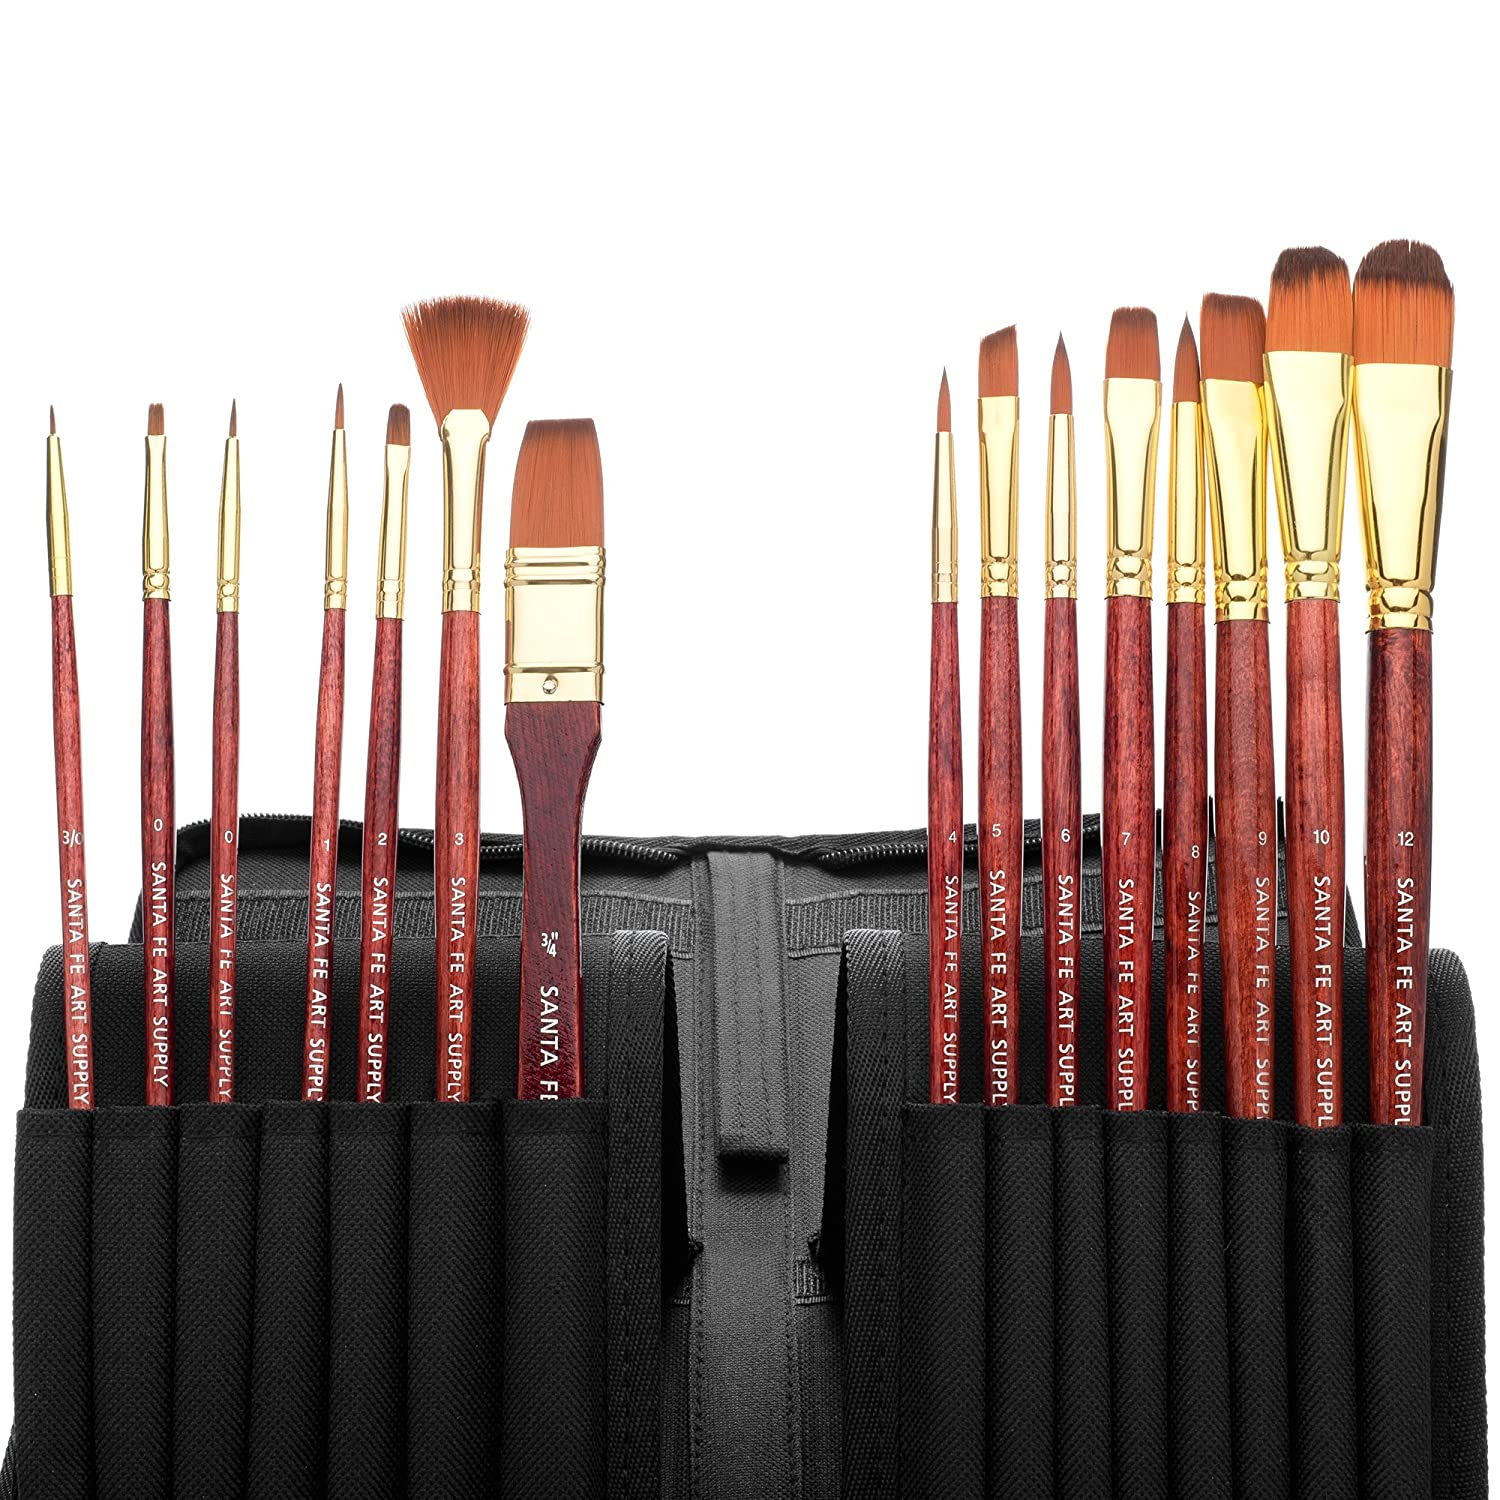 15 Artist Paint Brushes Set Acrylic Oil Watercolor Painting Craft Art Model Kit